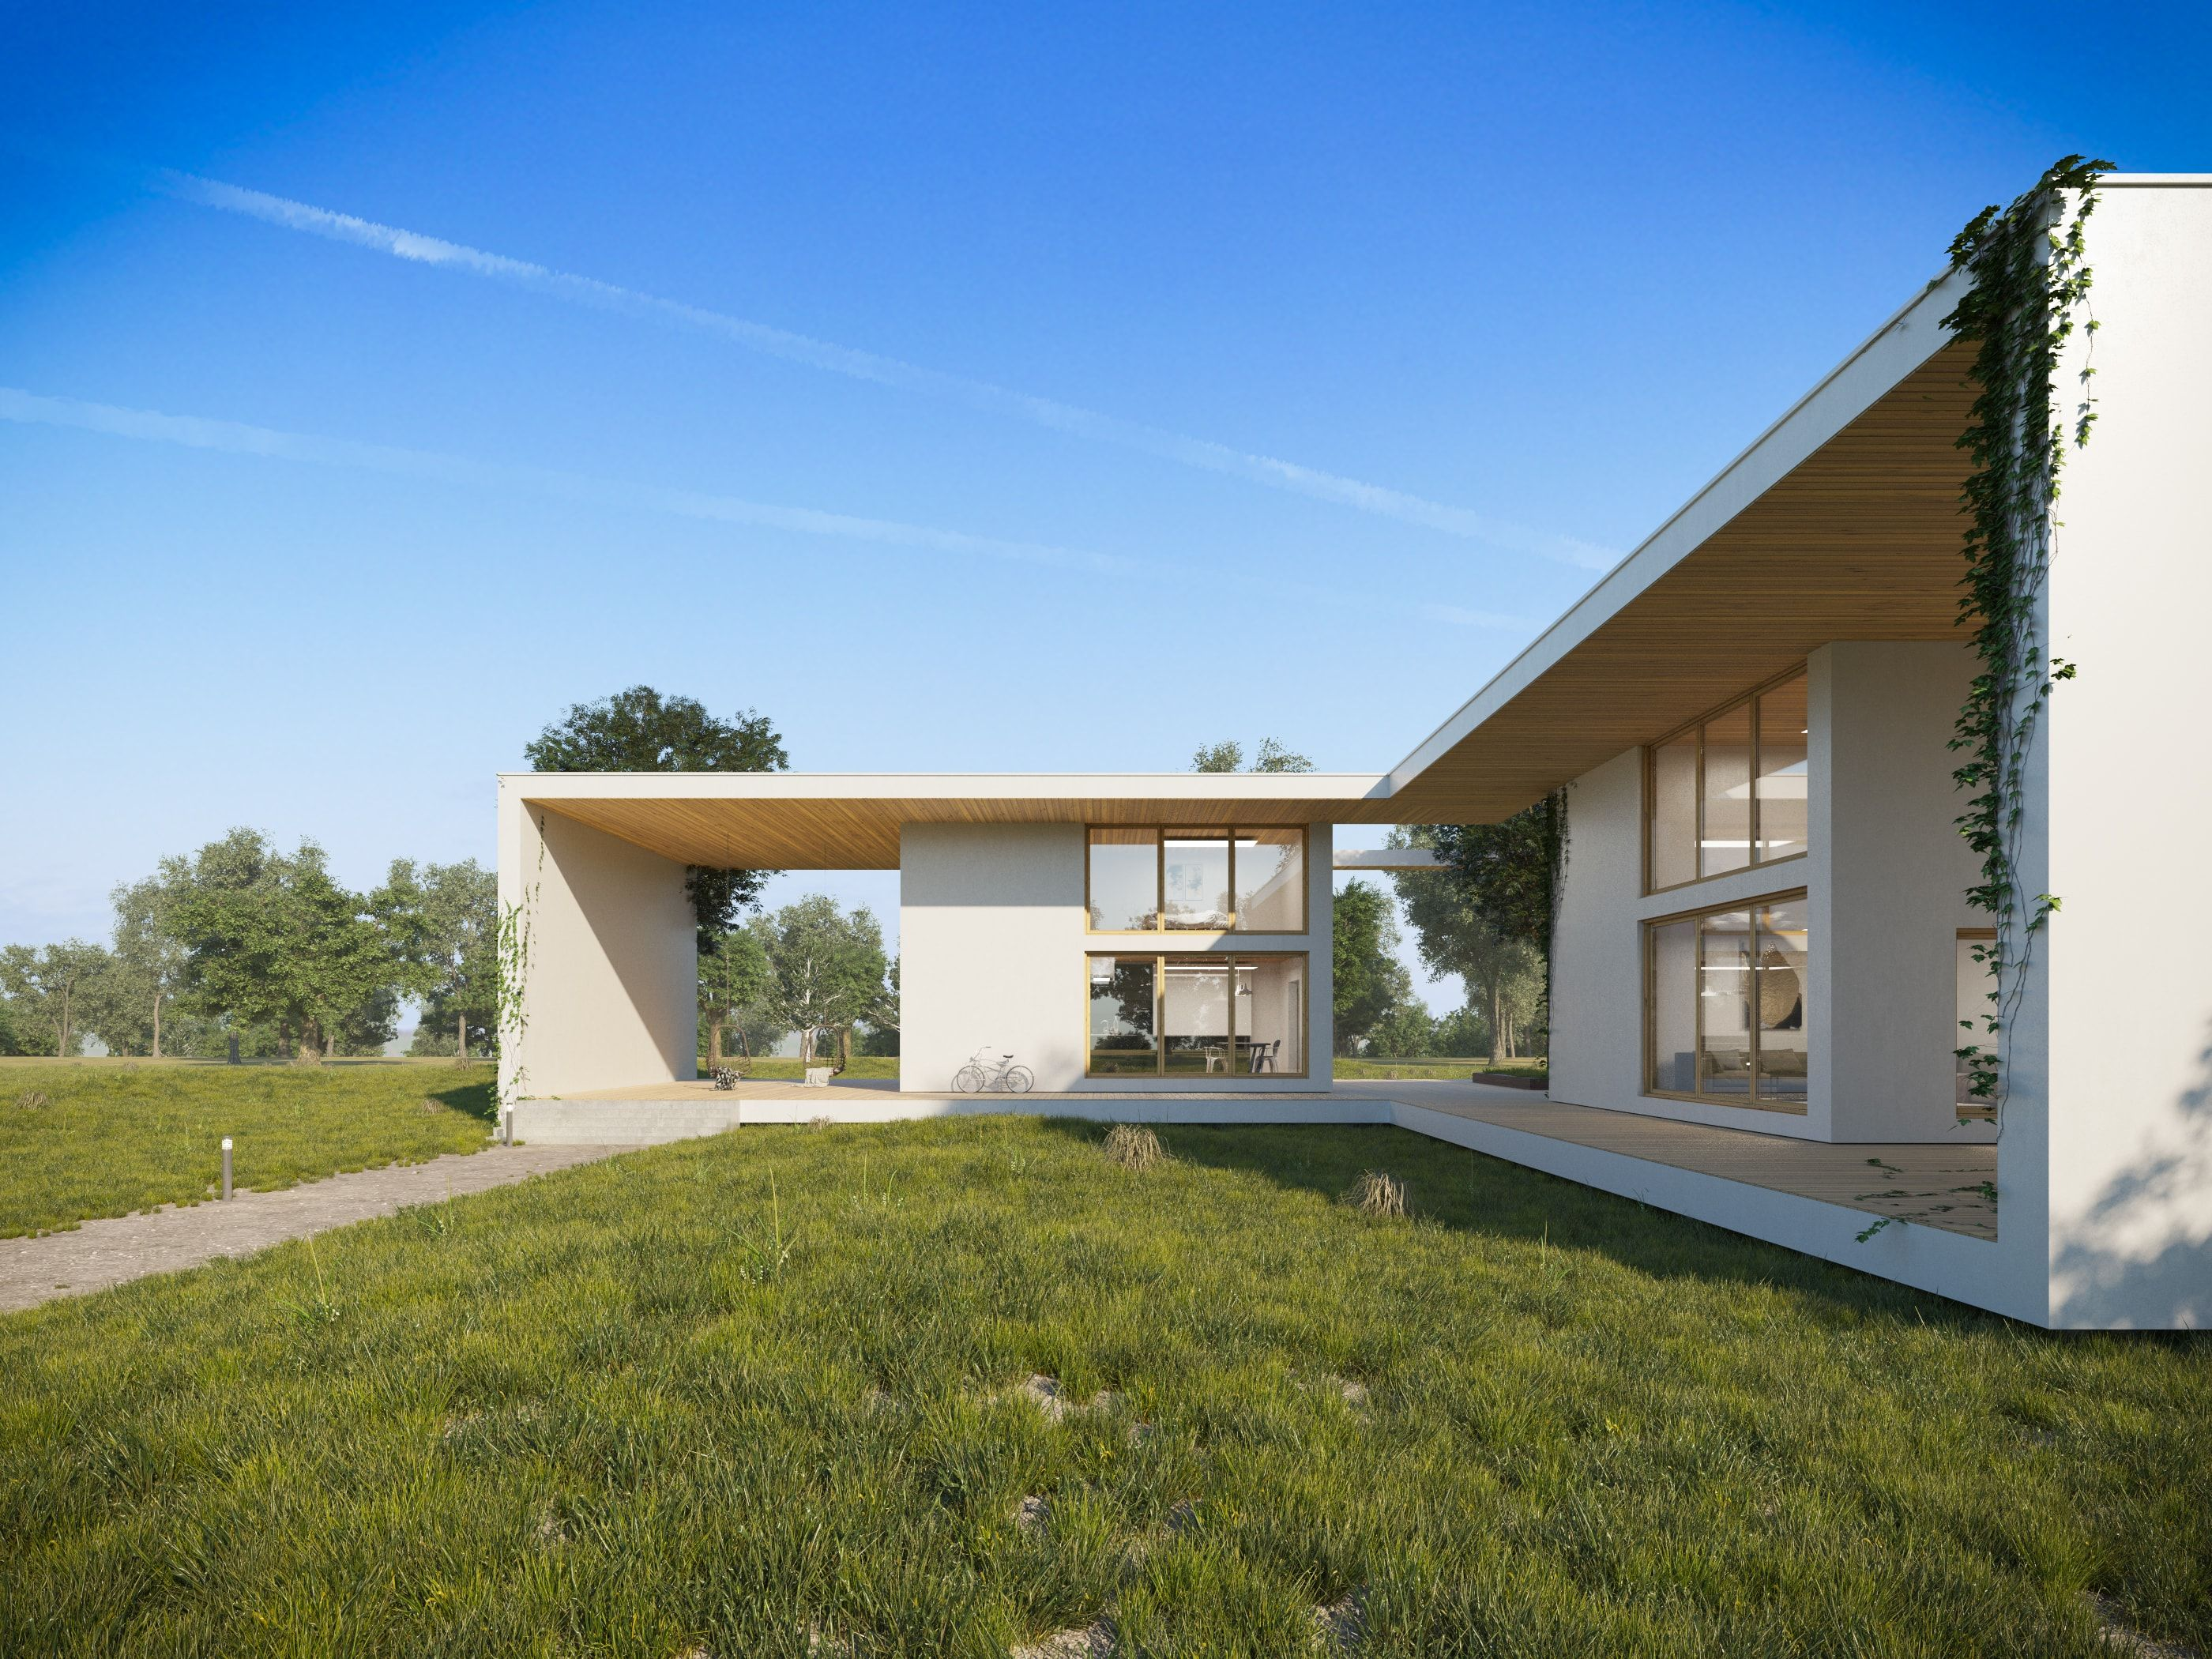 3D_Architectural_Visualization_cottages_Germany_02-min.jpg;  2800 x 2100 (@38%)